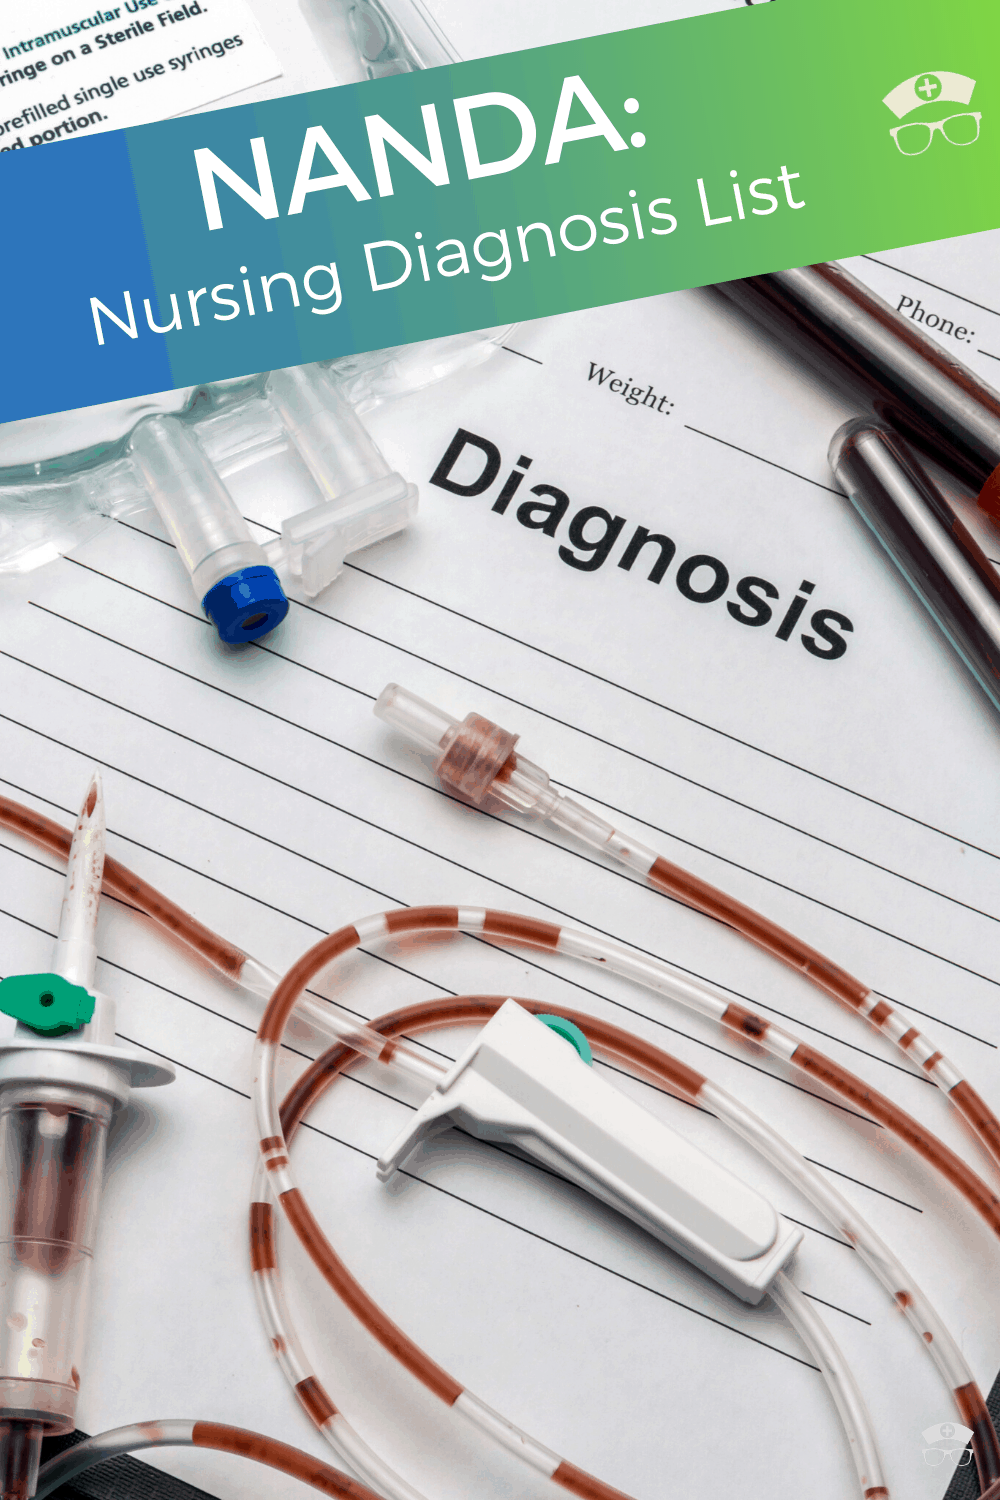 NANDA: Nursing Diagnosis List. Let's explore what the nursing diagnosis list is and what you may use it for. #thenerdynurse #nurse #nurses #nursetips #nursingstudent #nursingschool #nursediagnosis